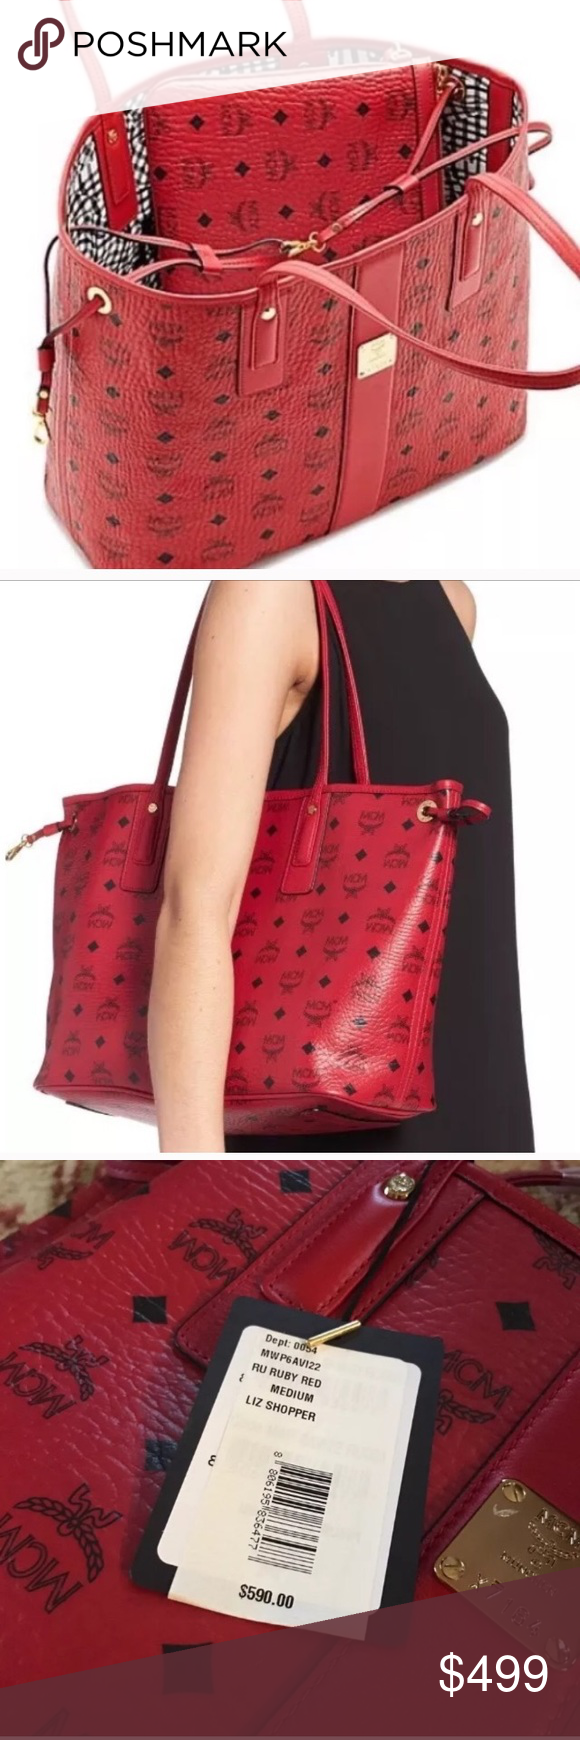 Authentic NEW mcm red liz medium tote w pouch This is a